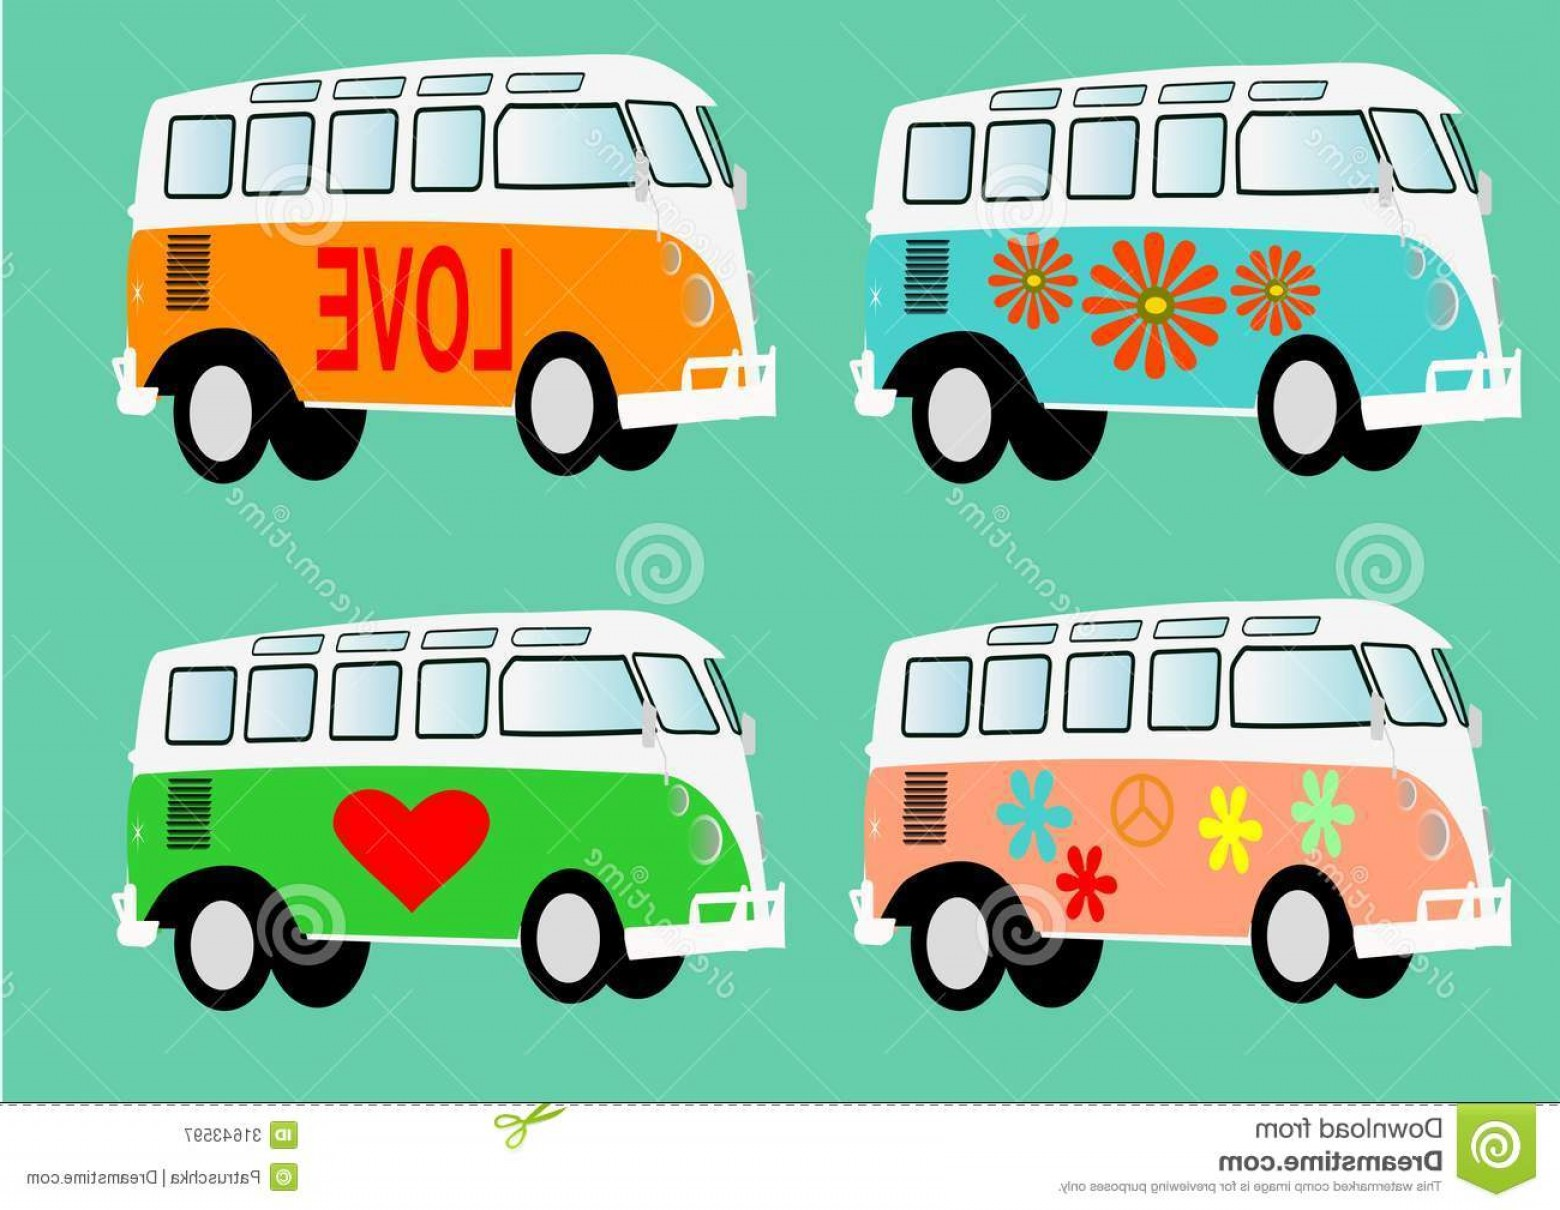 VW Vector Graphic: Royalty Free Stock Photography Volkswagen Camper Vintage T Holiday Hippie Retro Vintage Vector Image